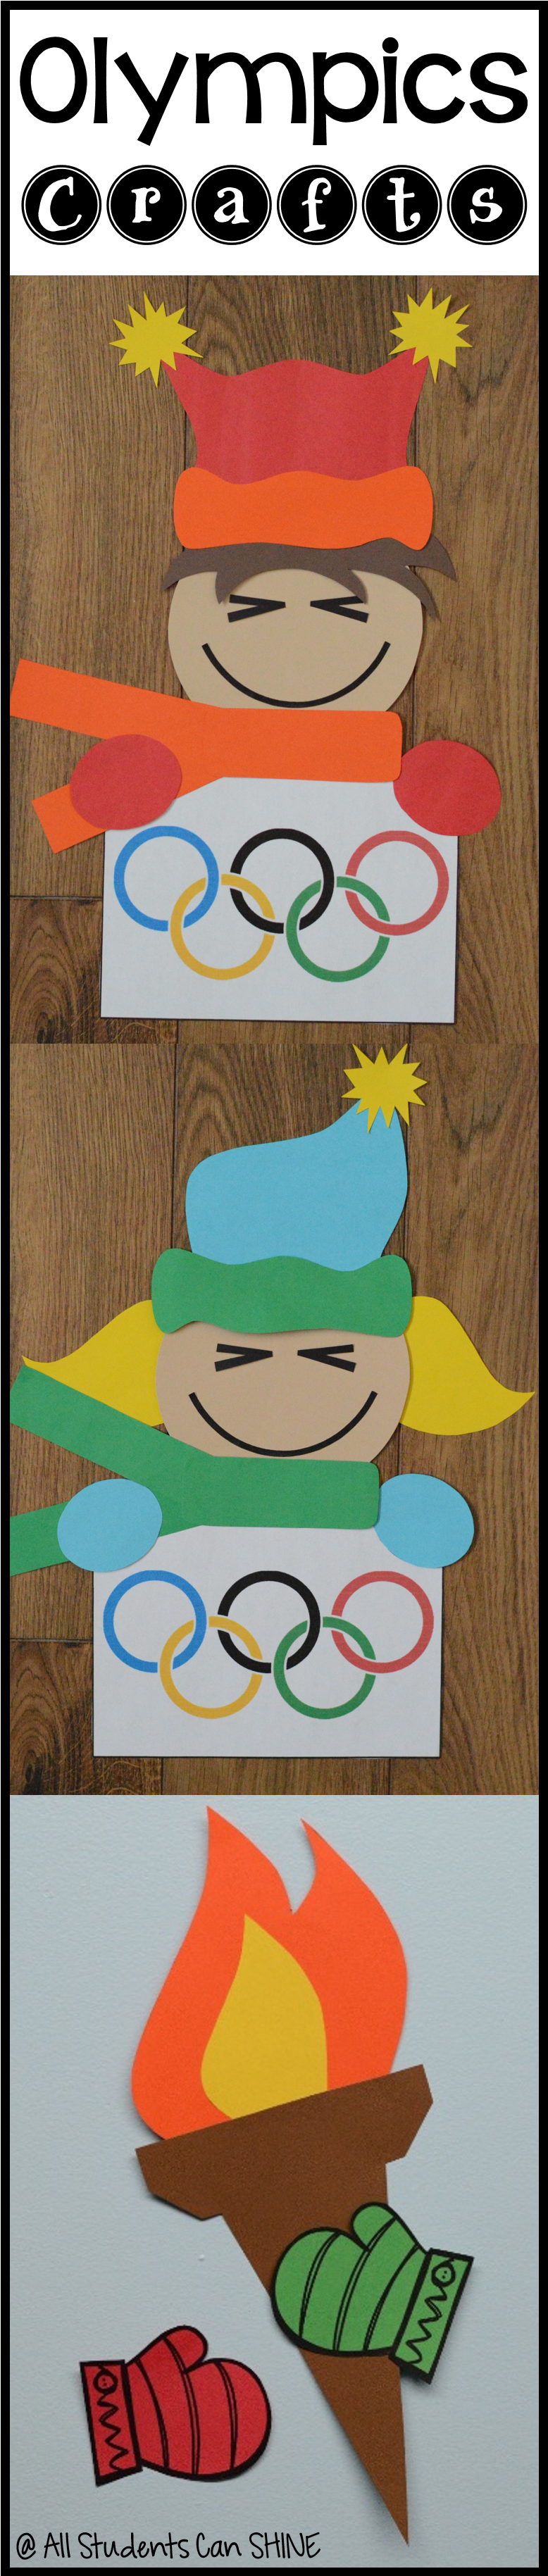 Olympics Crafts! I'm getting ready for my Olympics unit and these crafts are going to be perfect in our hallway :)